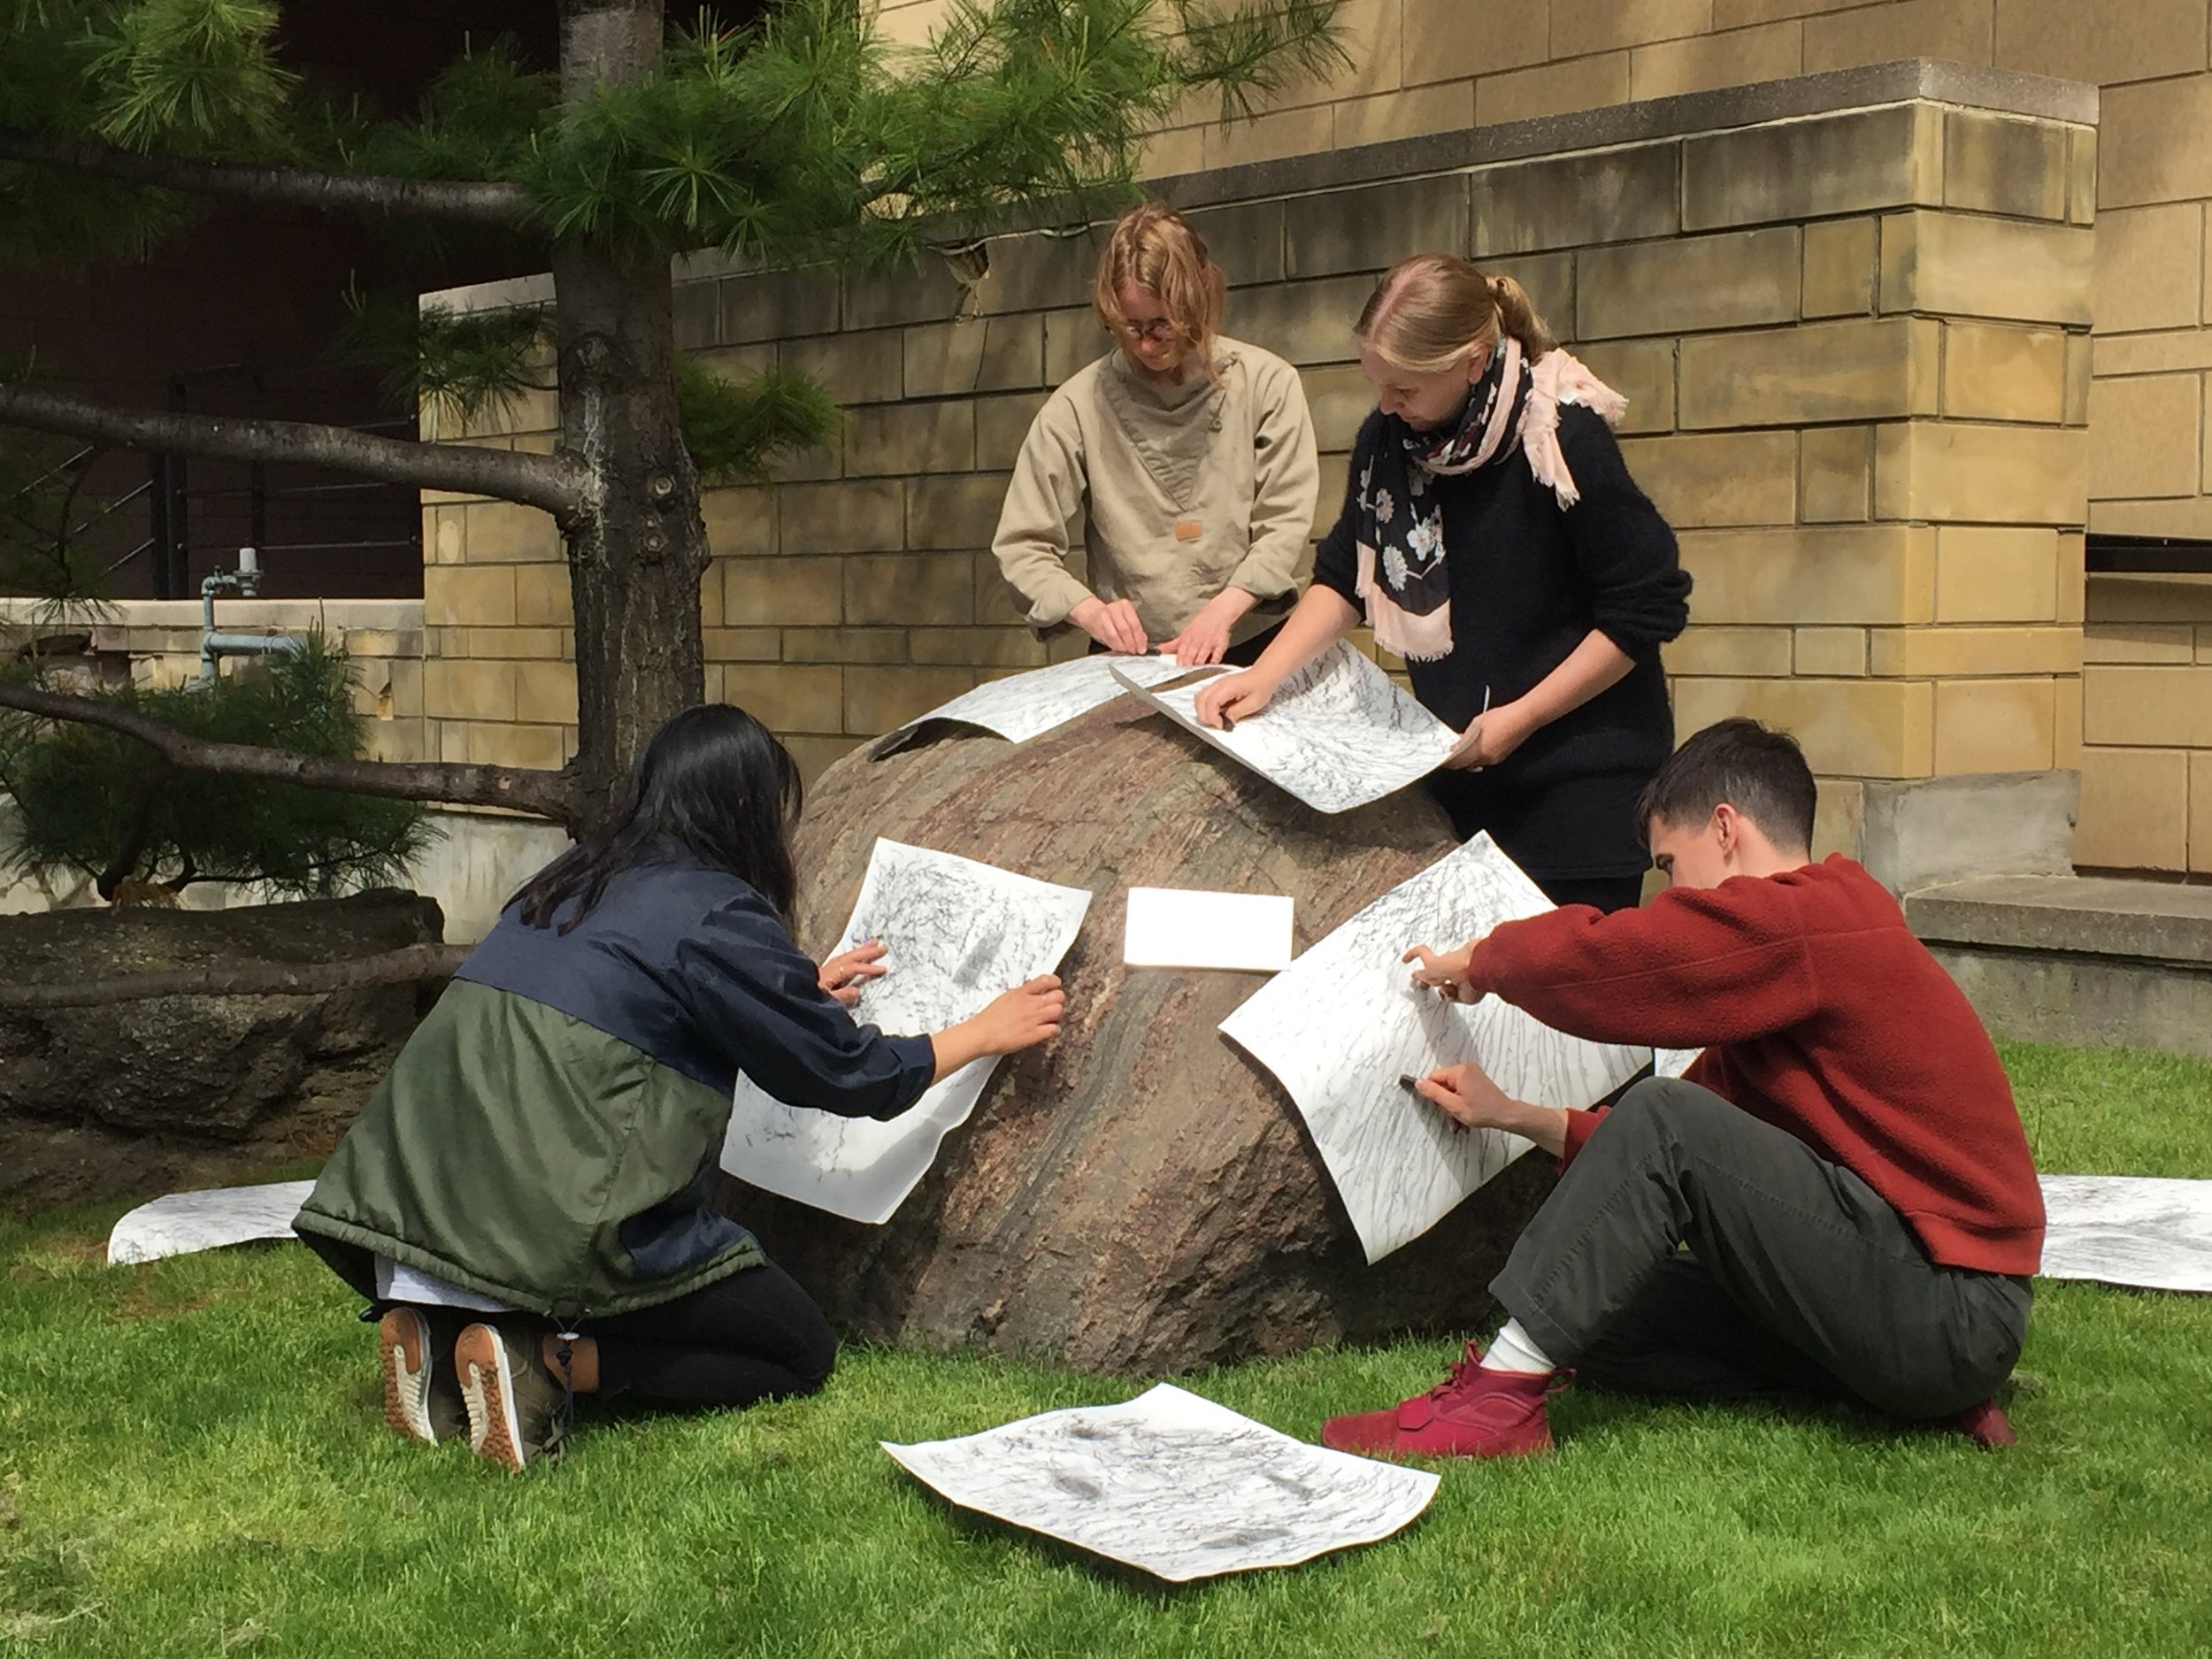 Workshop participants make rubbings of erratic glaciers as part of the boulder kite making (photo by Meghan Price)